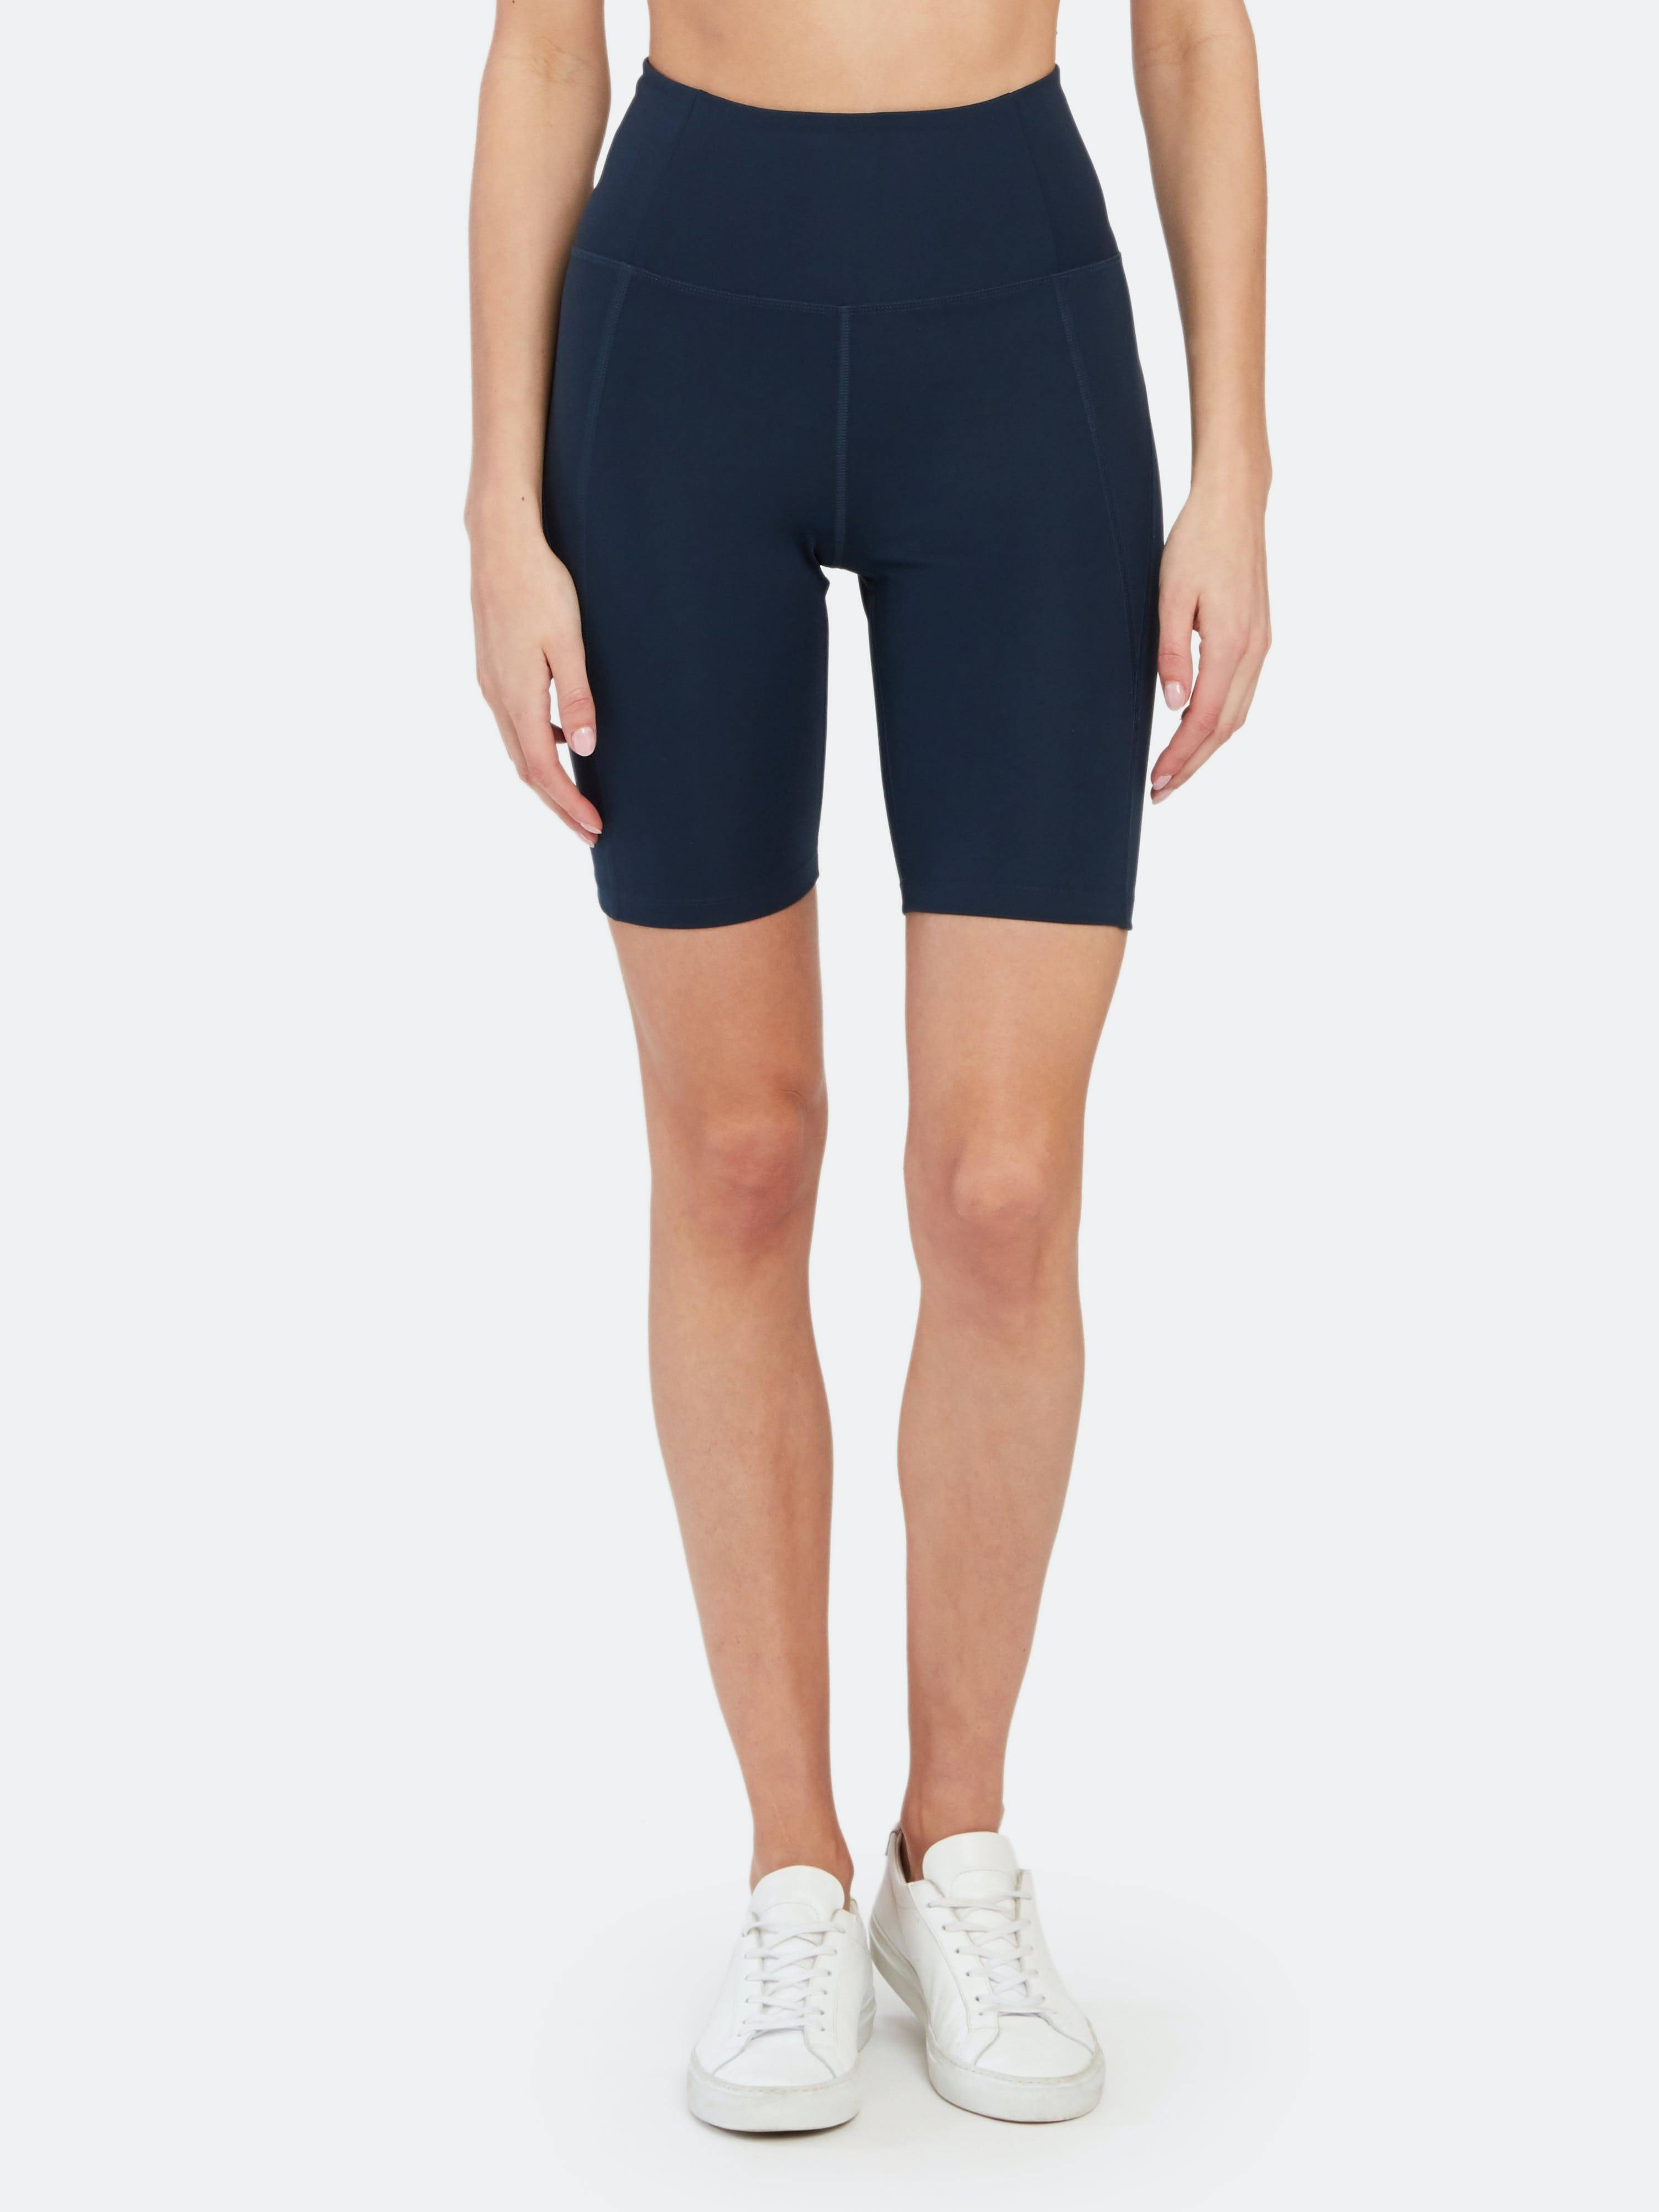 Girlfriend Collective High-Rise Bike Short - S - Also in: M, XS, XL, L  - Blue